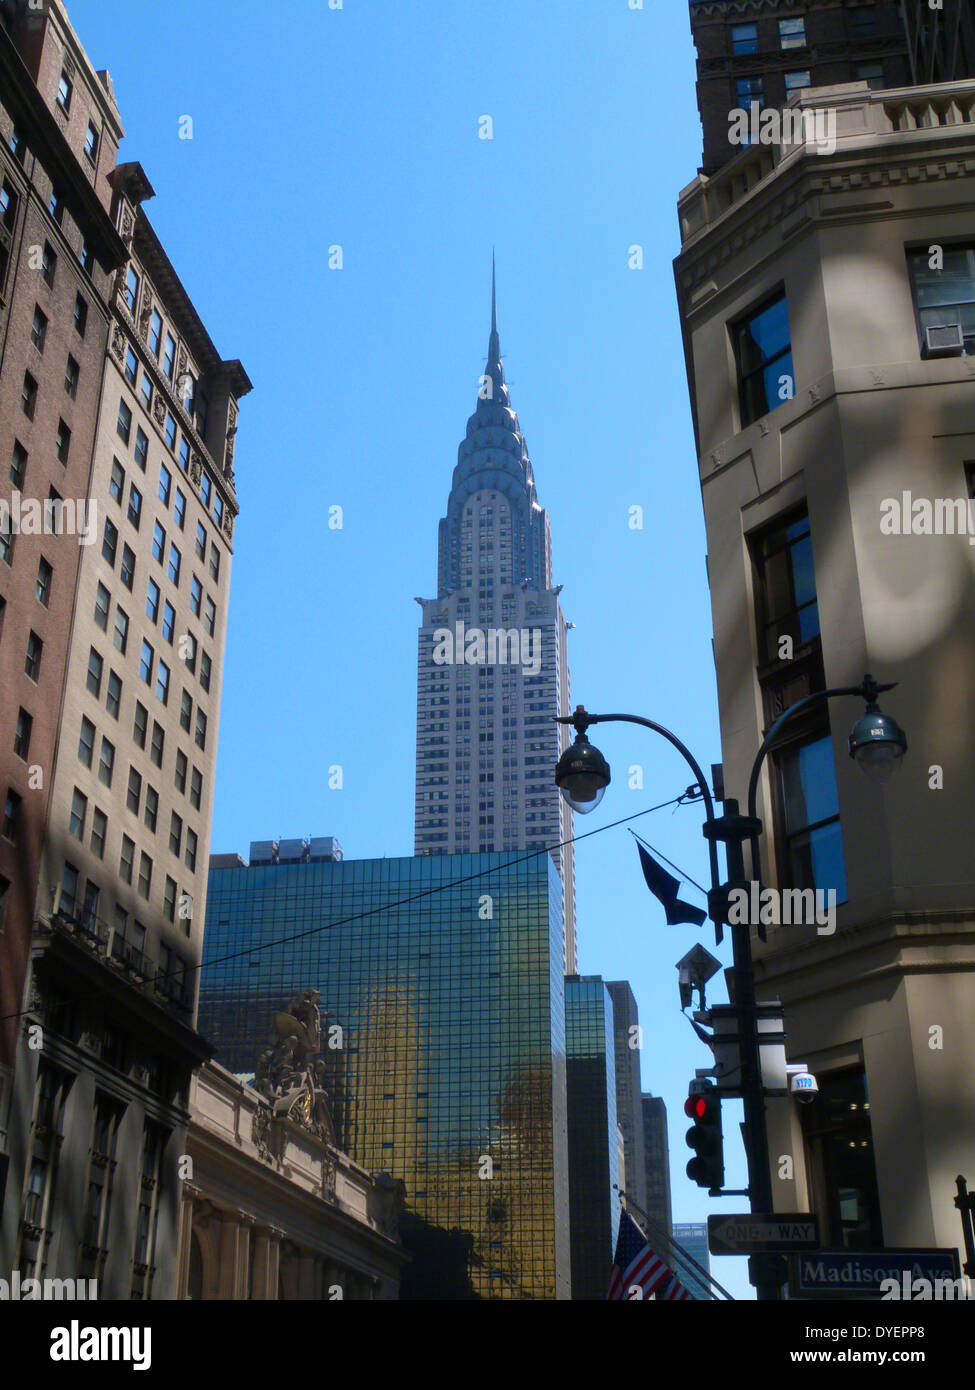 The Chrysler Building is an Art Deco style skyscraper in New York ...